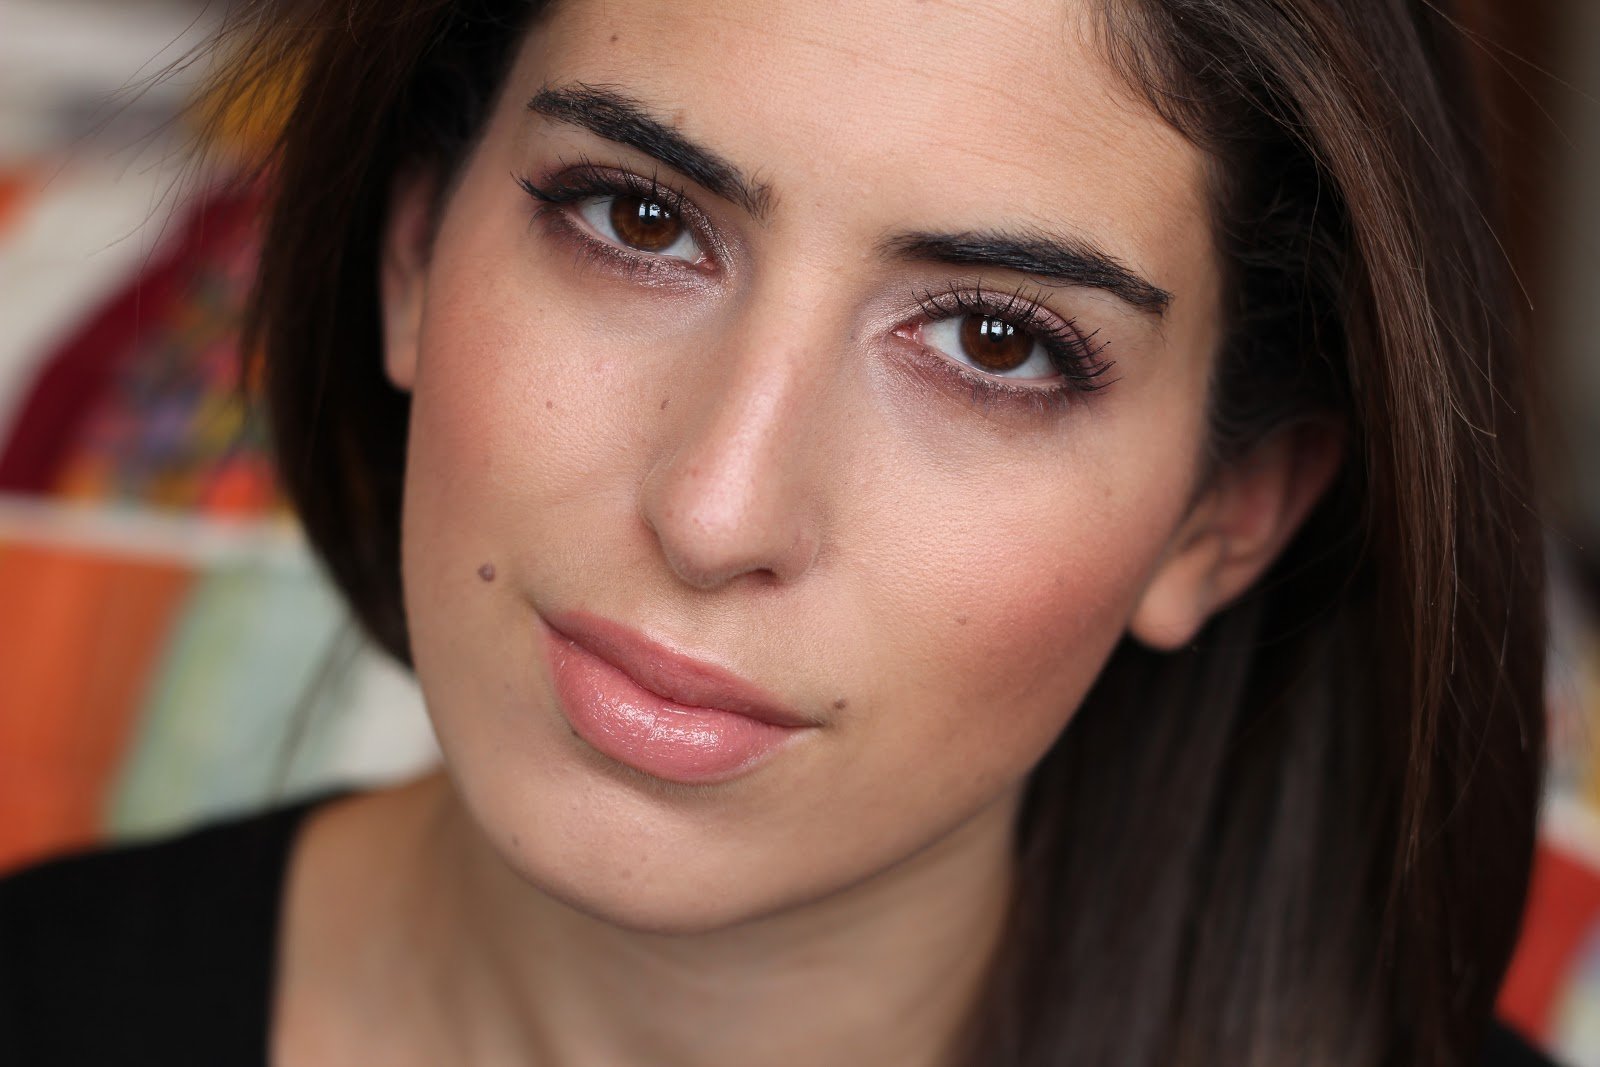 THE MIX: A NUDE LIP – Lily Pebbles